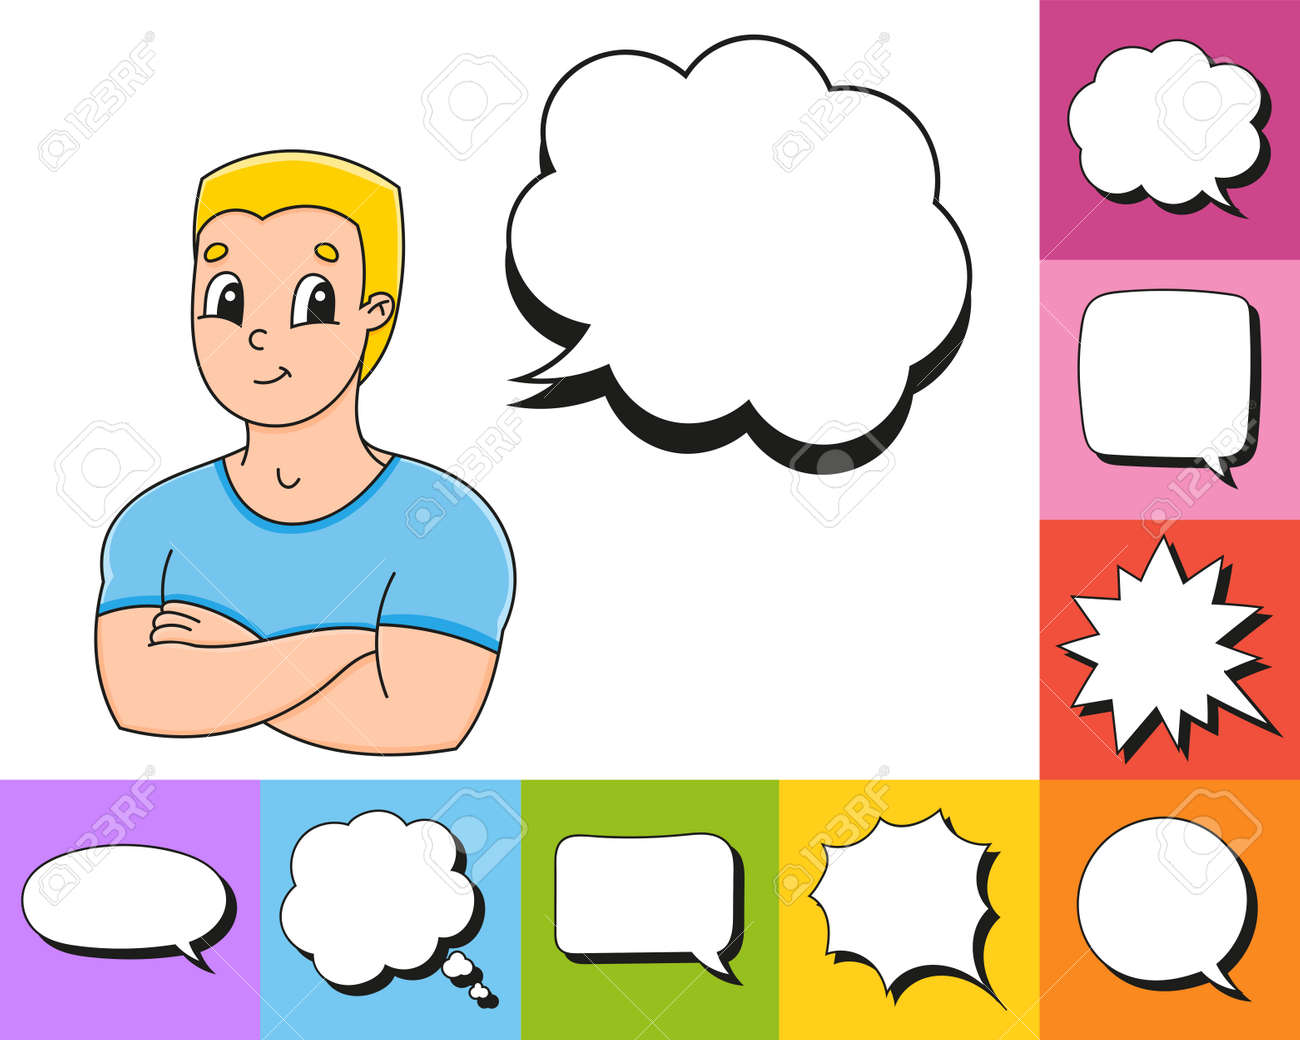 Set of speech bubbles of different shapes. With a cute cartoon character. Hand drawn. Thinking balloons. Vector illustration isolated on white background. Comic doodle style. - 169599811